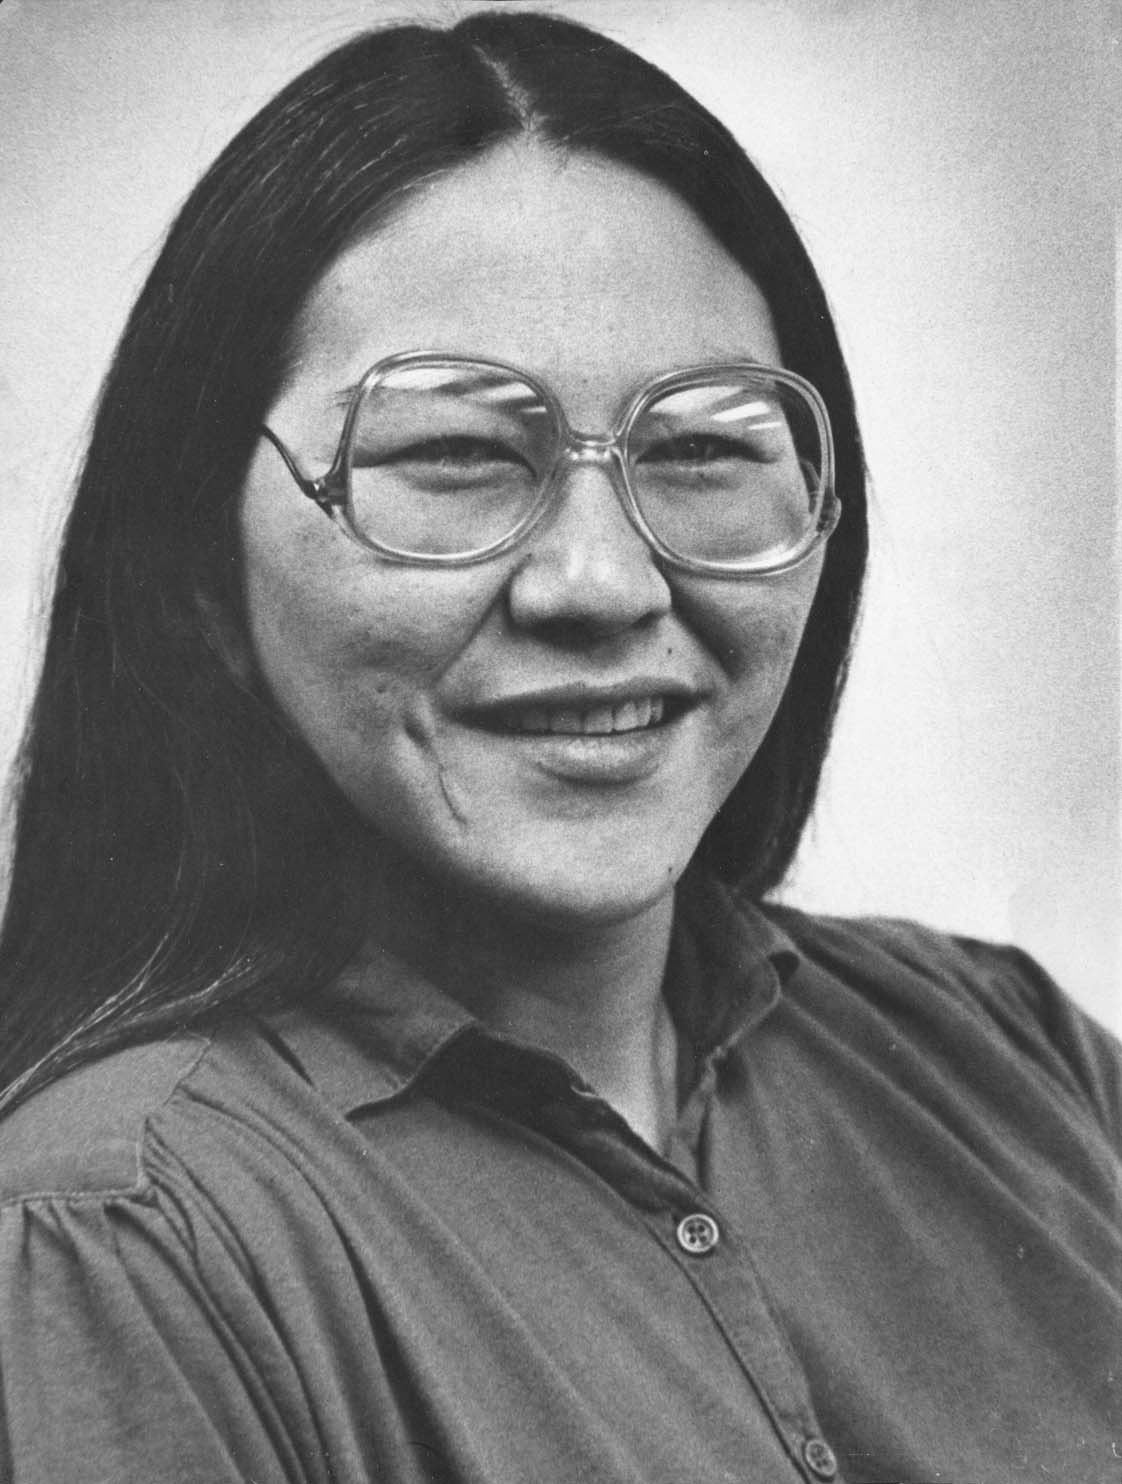 Smiling Native Alaskan woman wearing glasses.